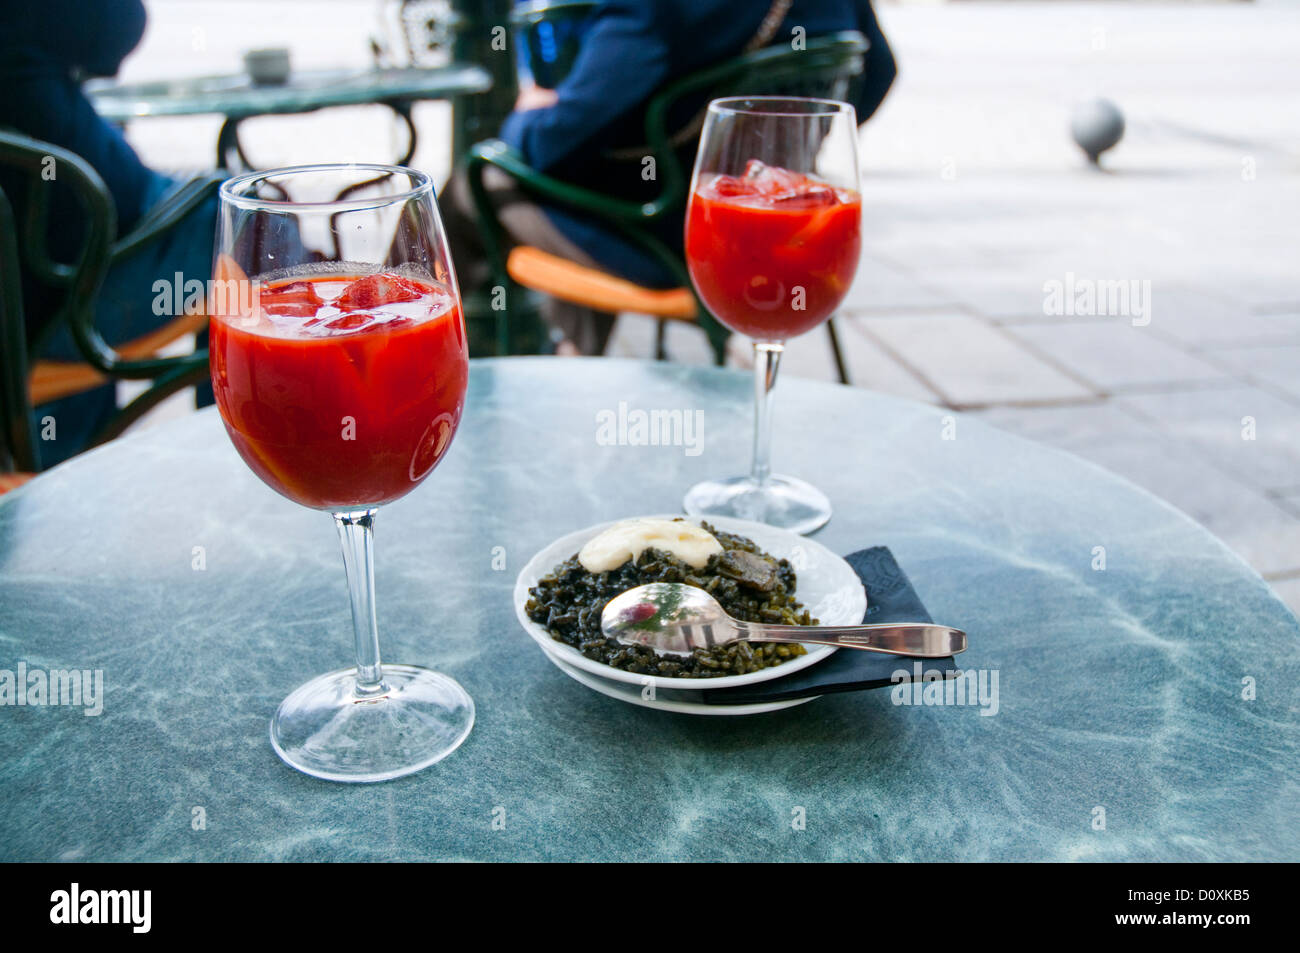 Two glasses of tomato juice and Spanish tapa of black rice with alioli. Madrid, Spain. - Stock Image